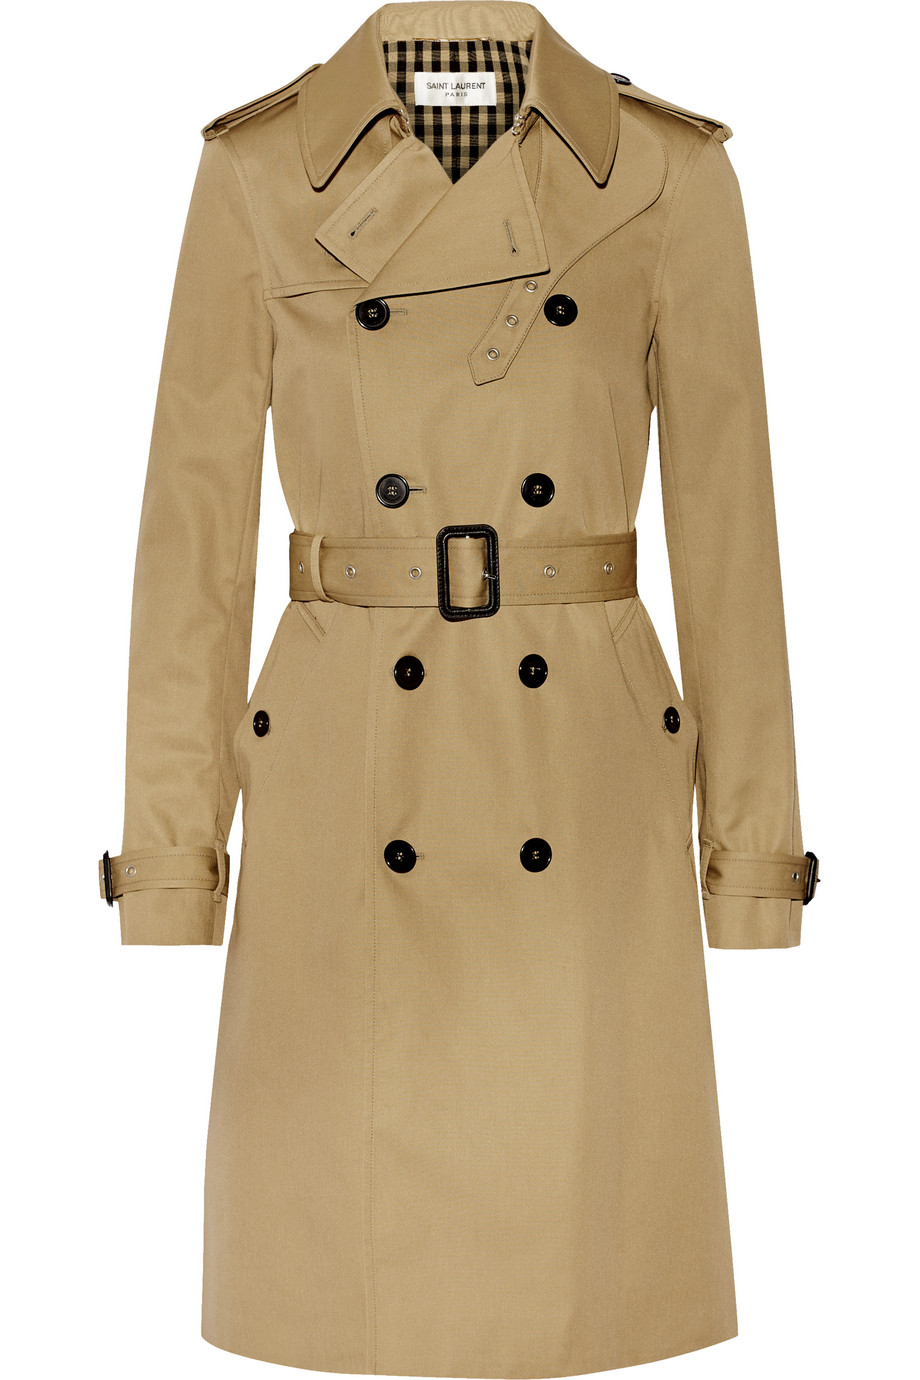 Saint Laurent Gabardine Trench Coat, Beige, Women's, Size: 40